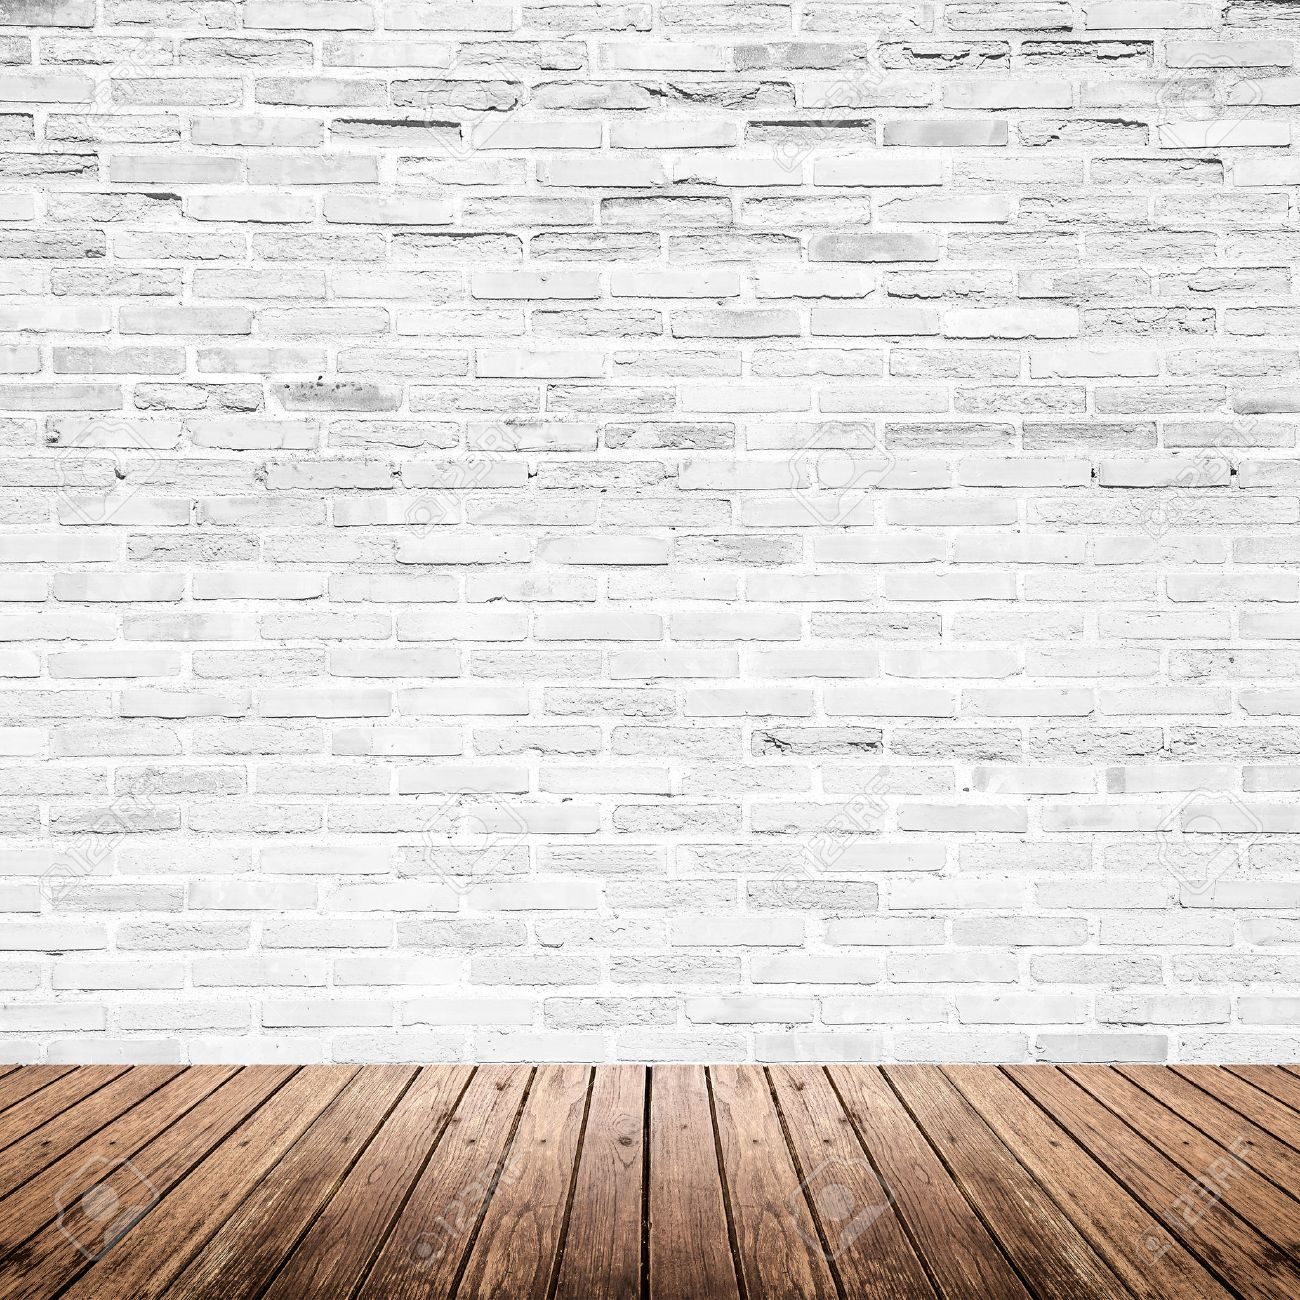 Old Interior Room With Broken White Brick Wall And Grunge Wood Floor  Texture Stock Photo